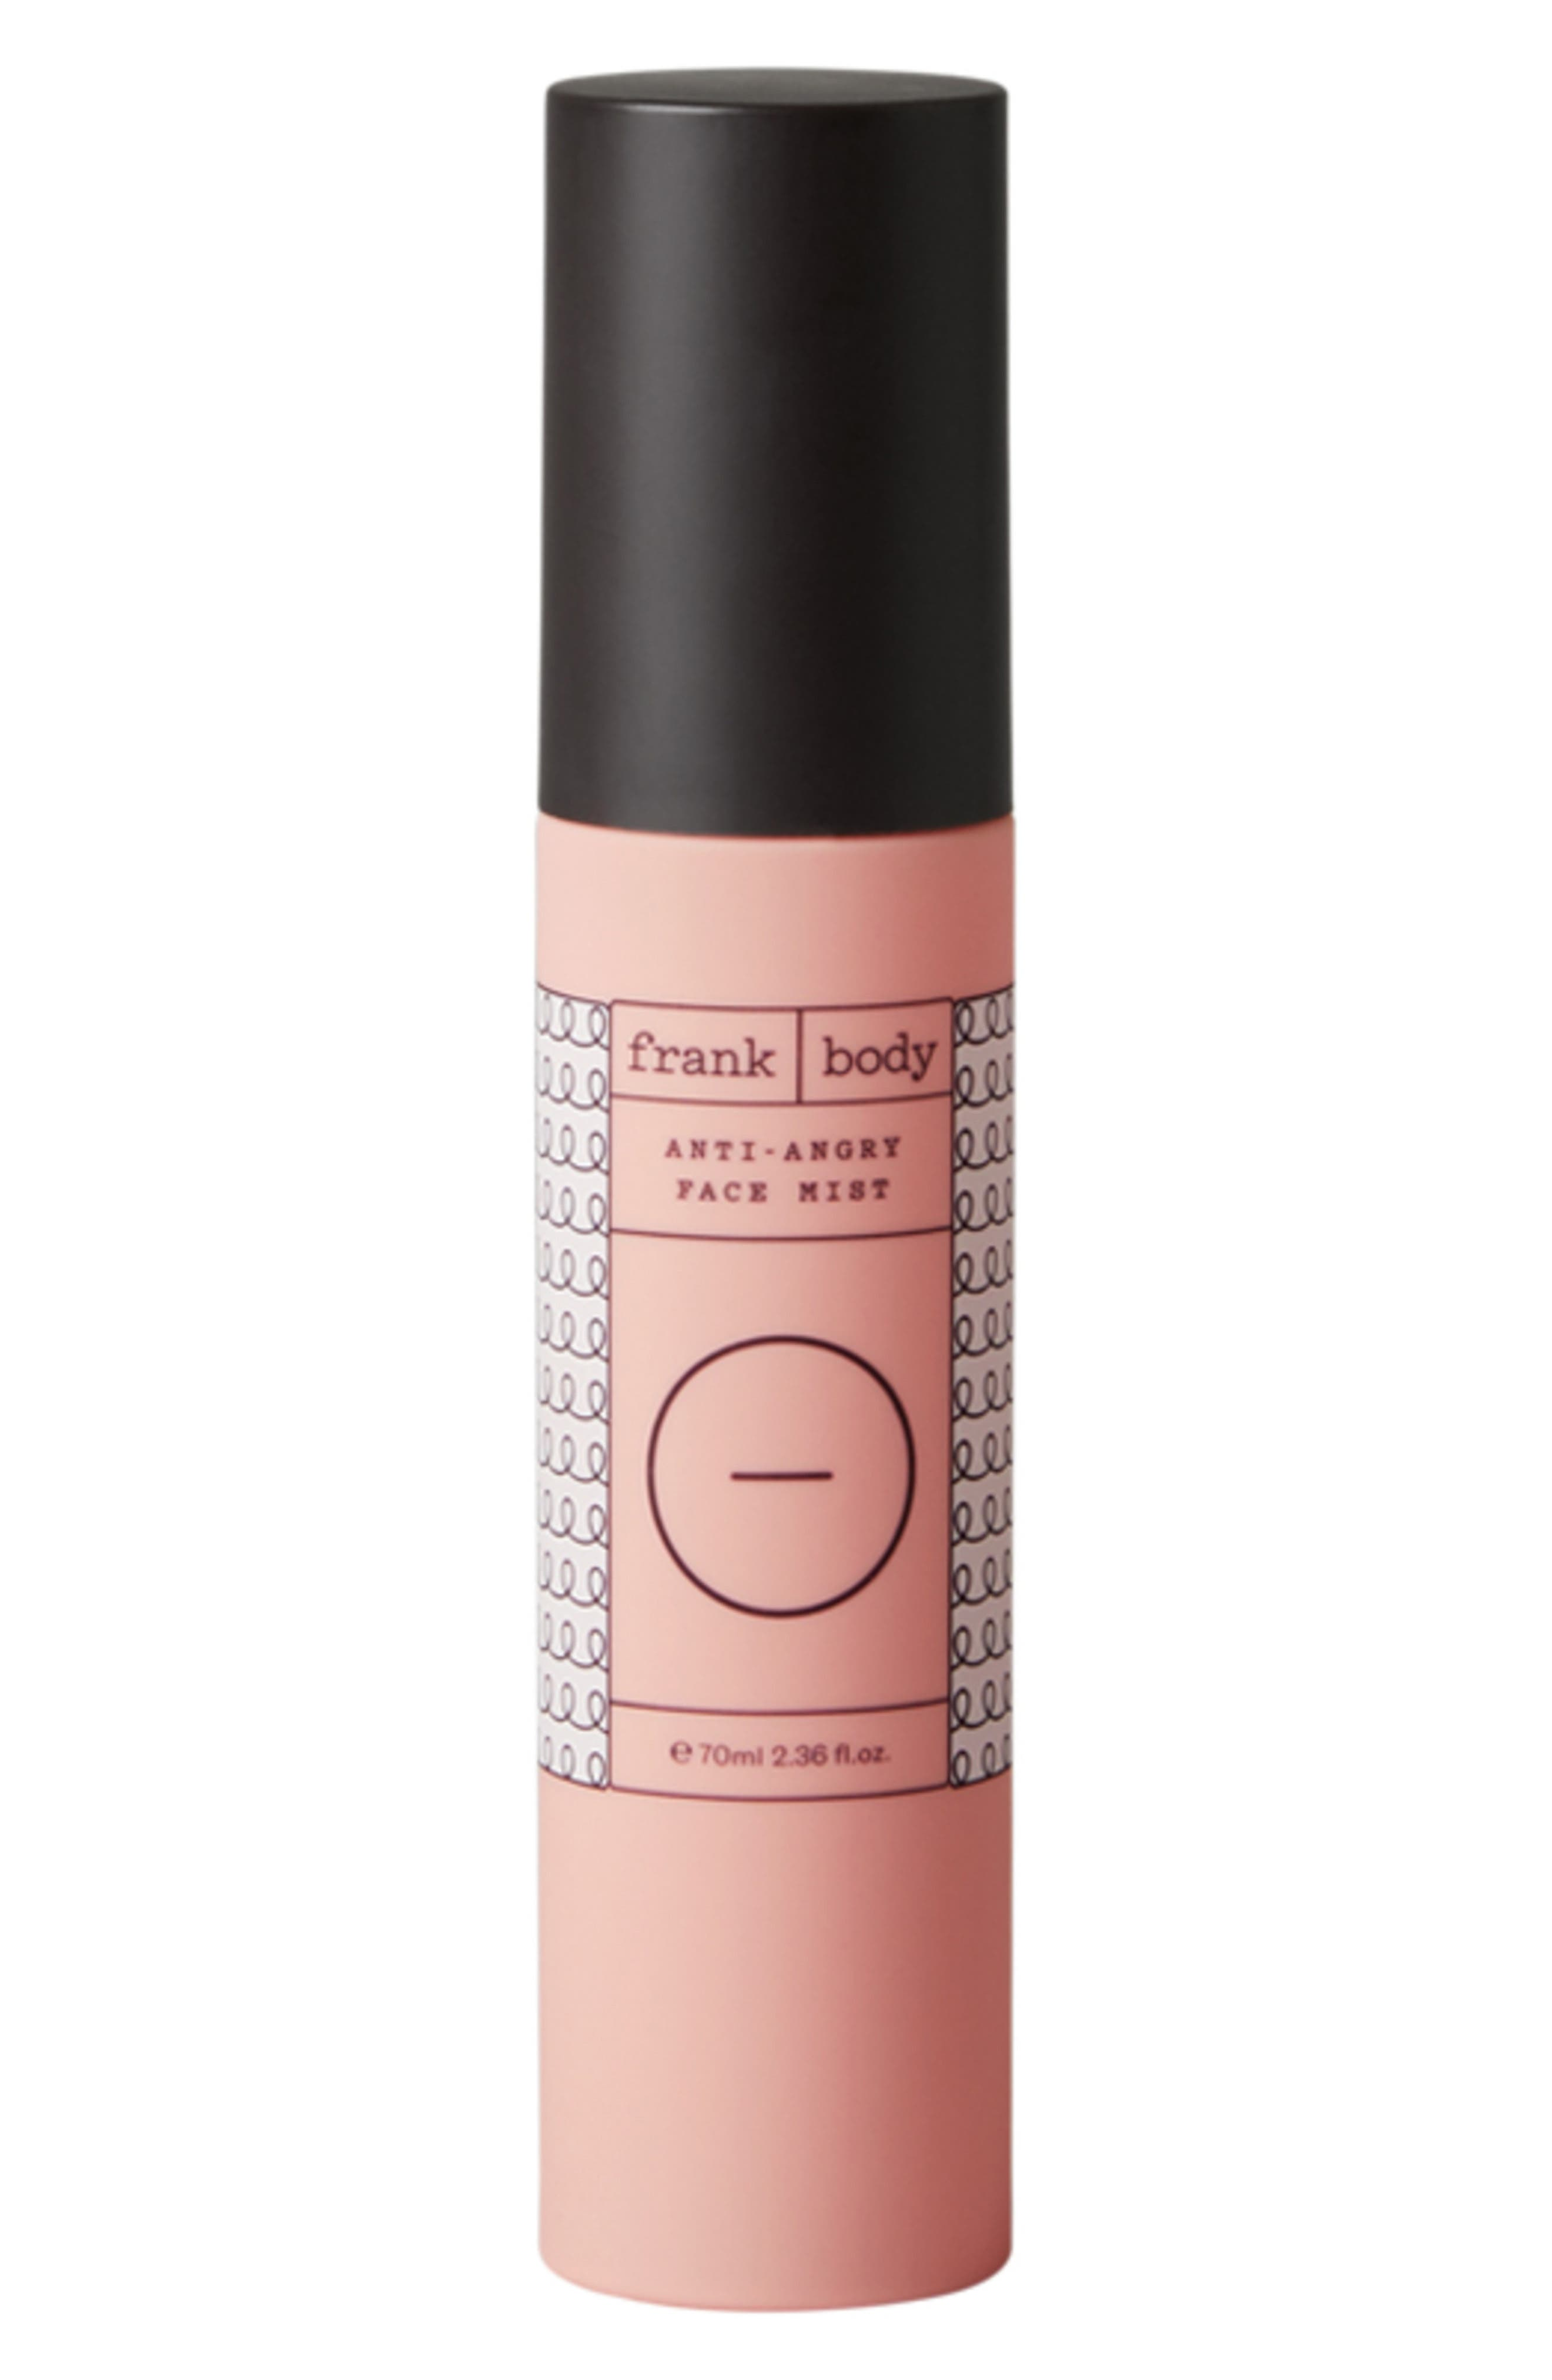 Anti-Angry Face Mist,                             Main thumbnail 1, color,                             NO COLOR